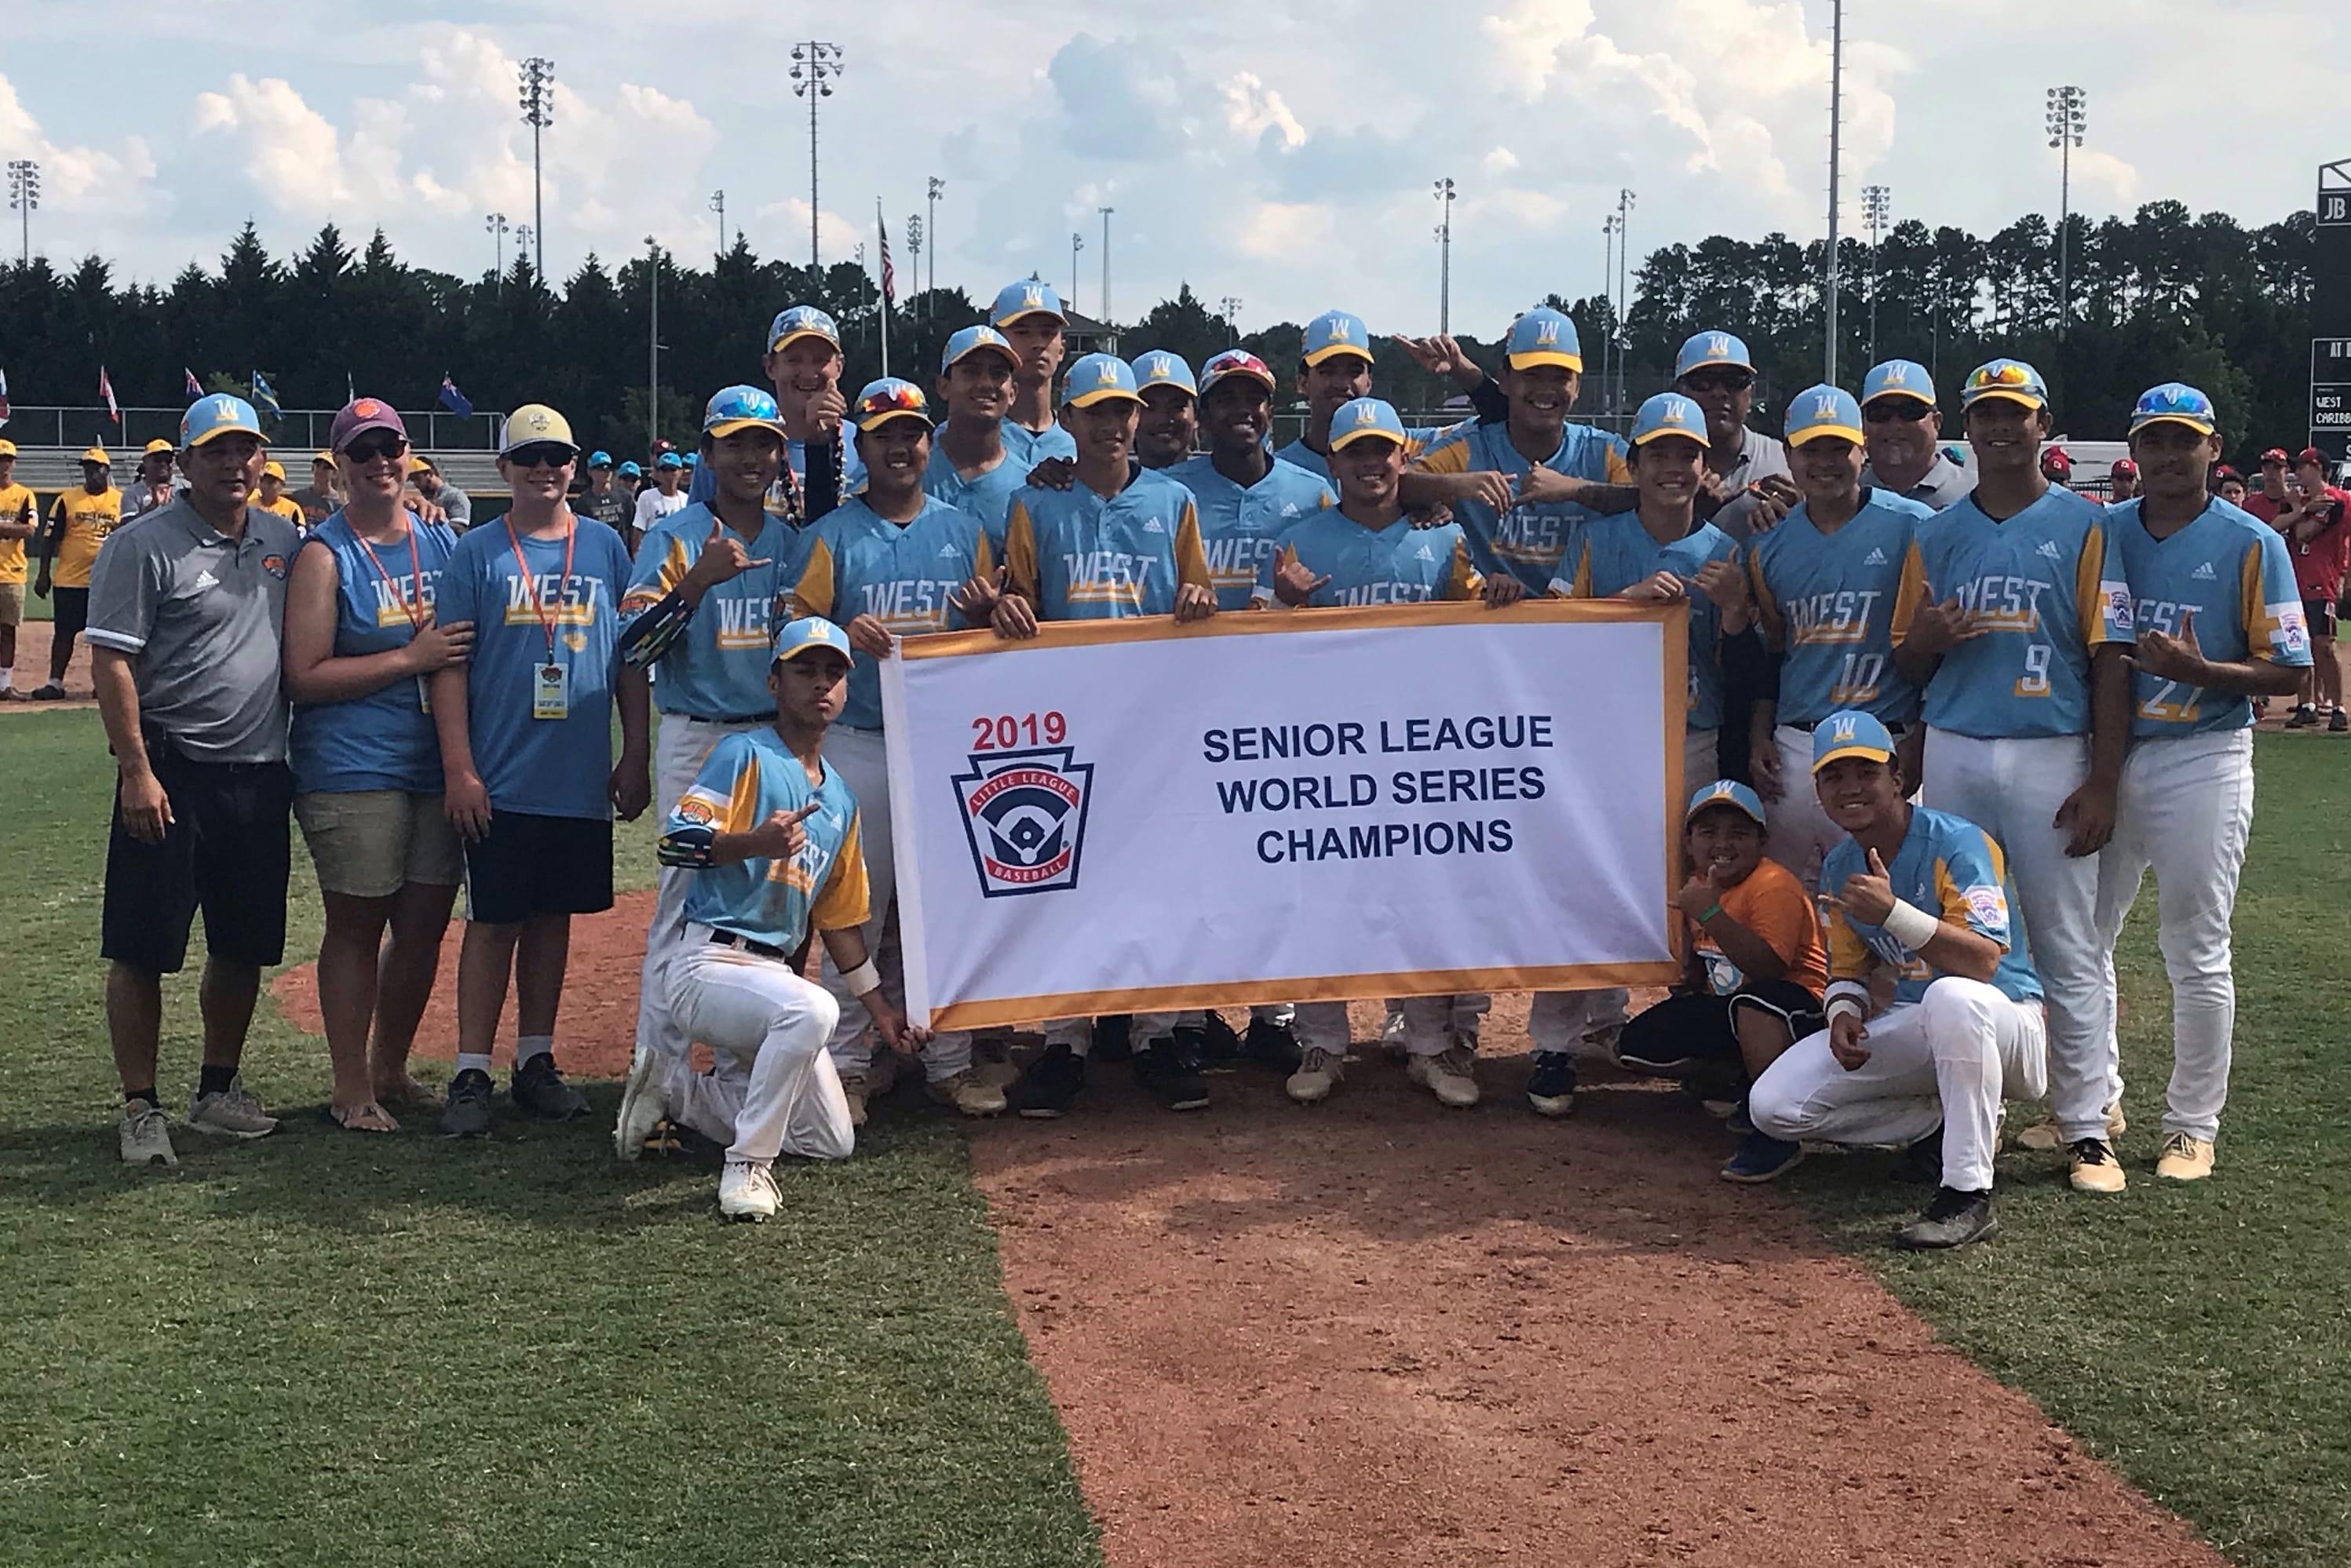 2019 SLBWS Champions - West Region